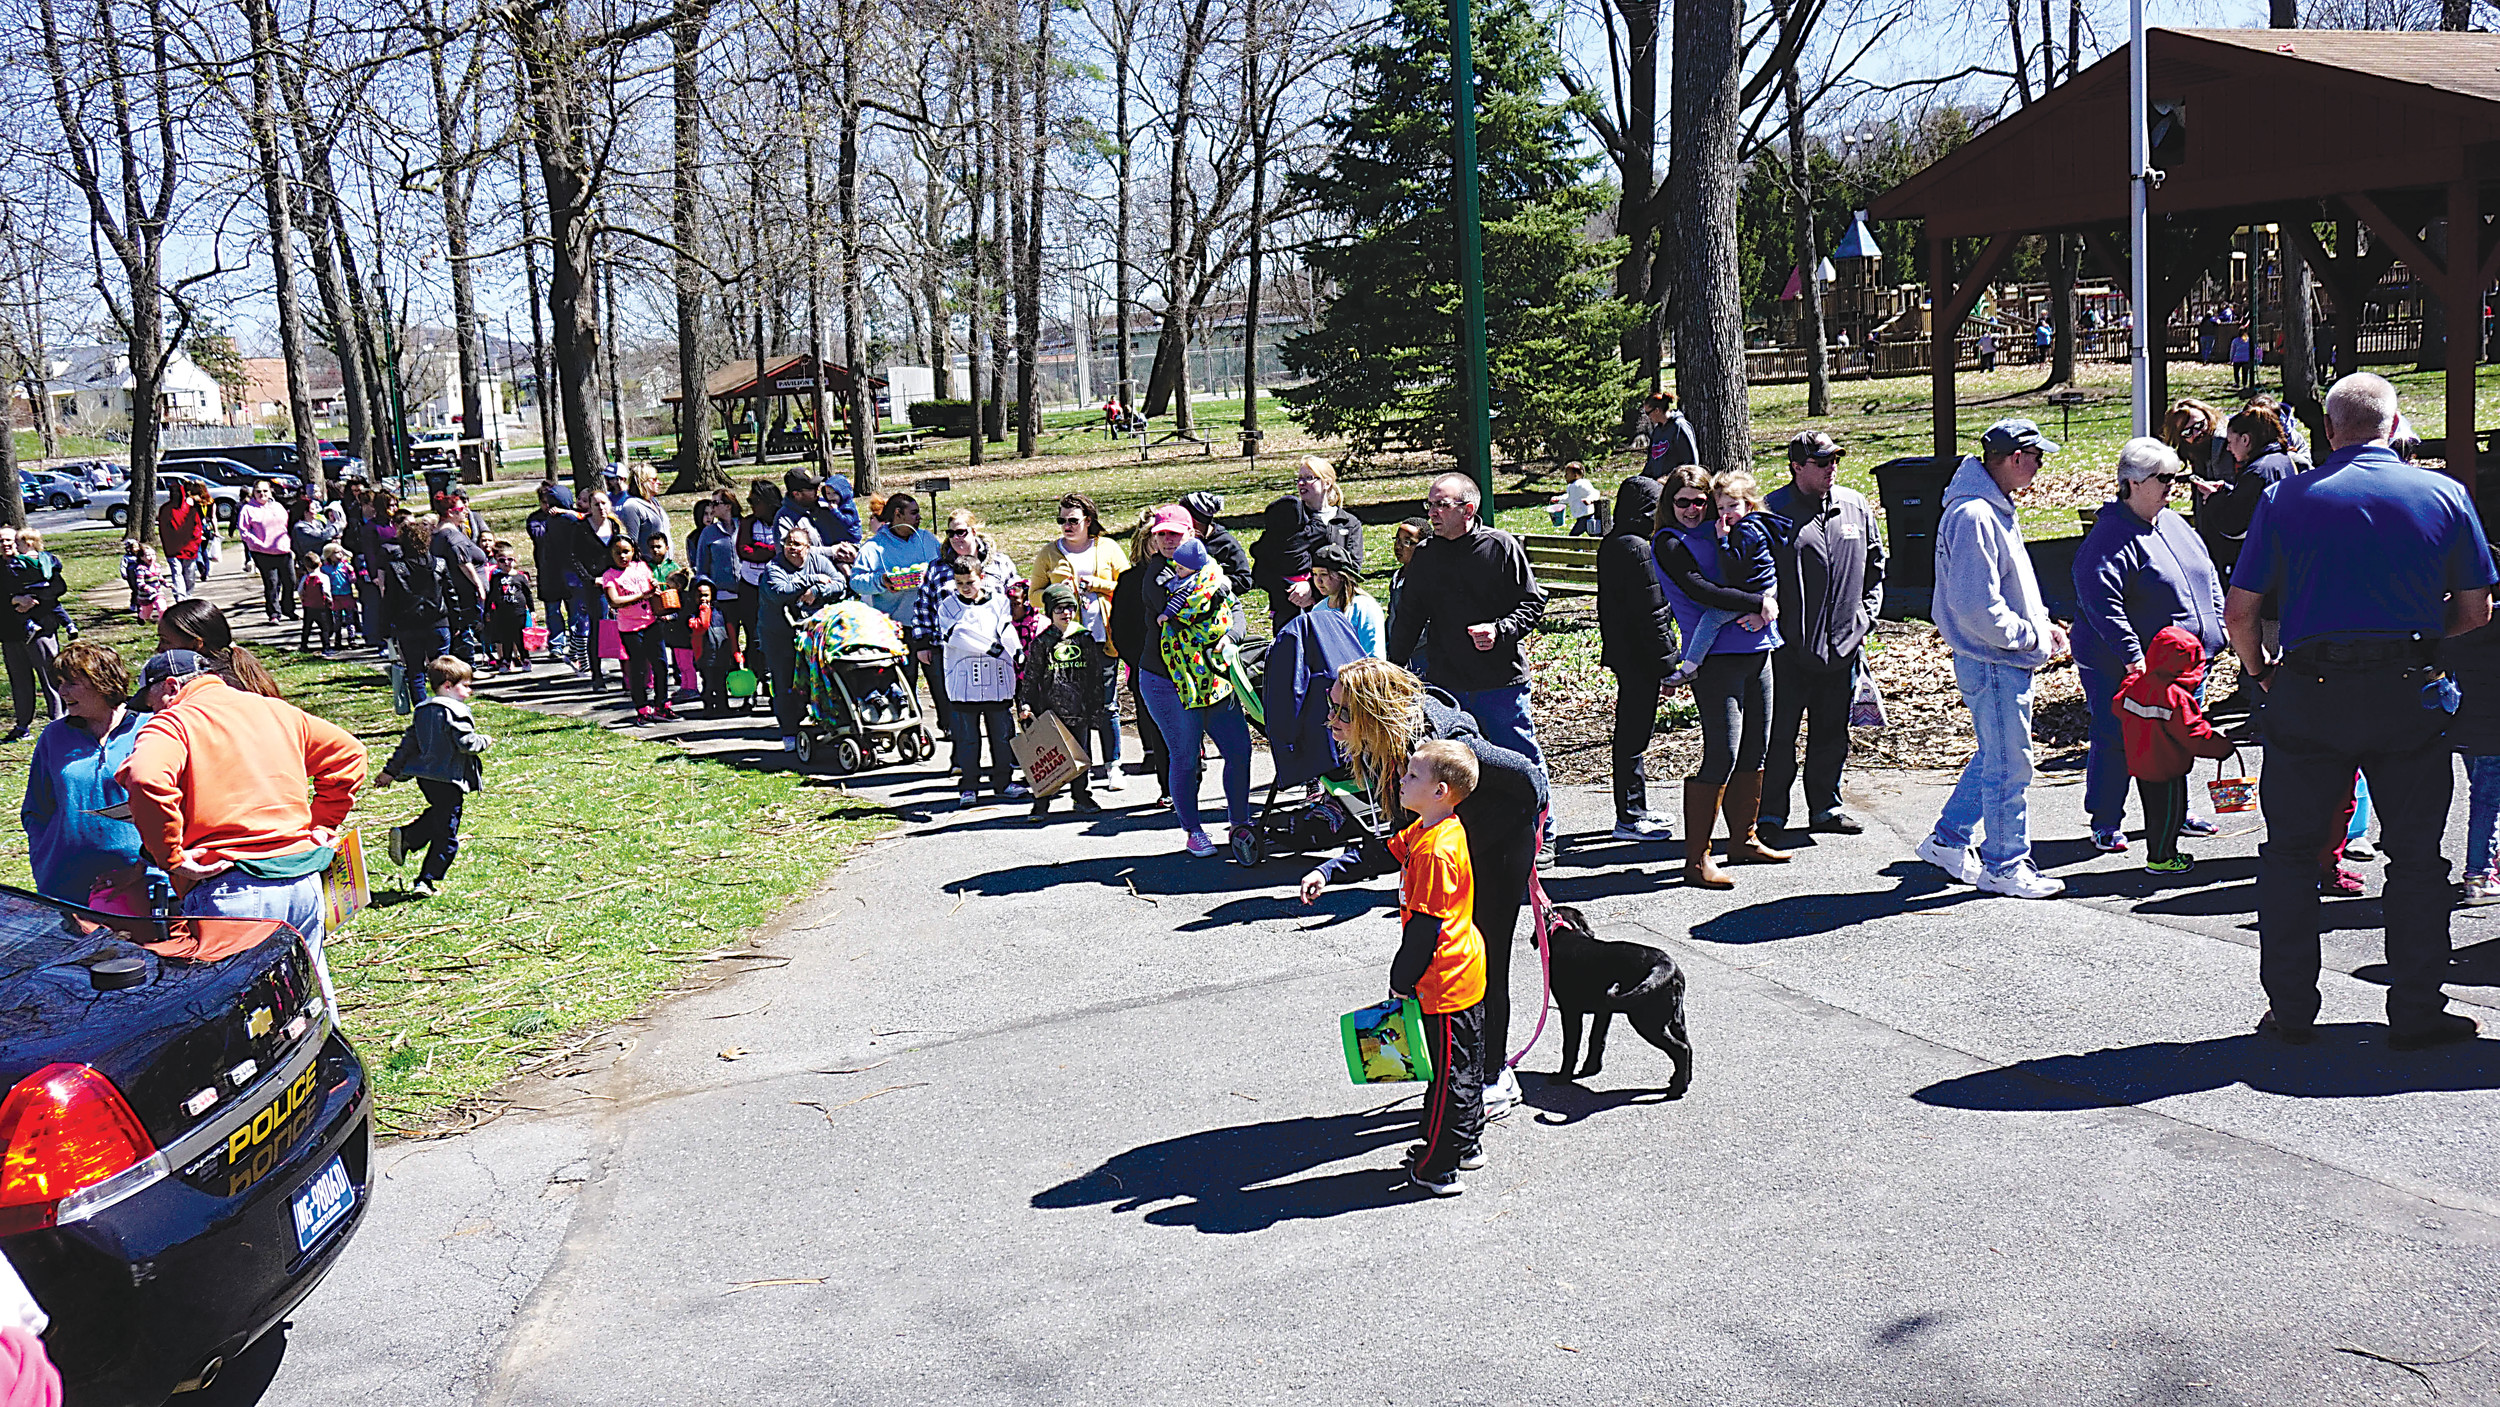 A large crowd gathered Saturday for the Easter Egg hunt put on by the Middletown Police Department at Hoffer Park.